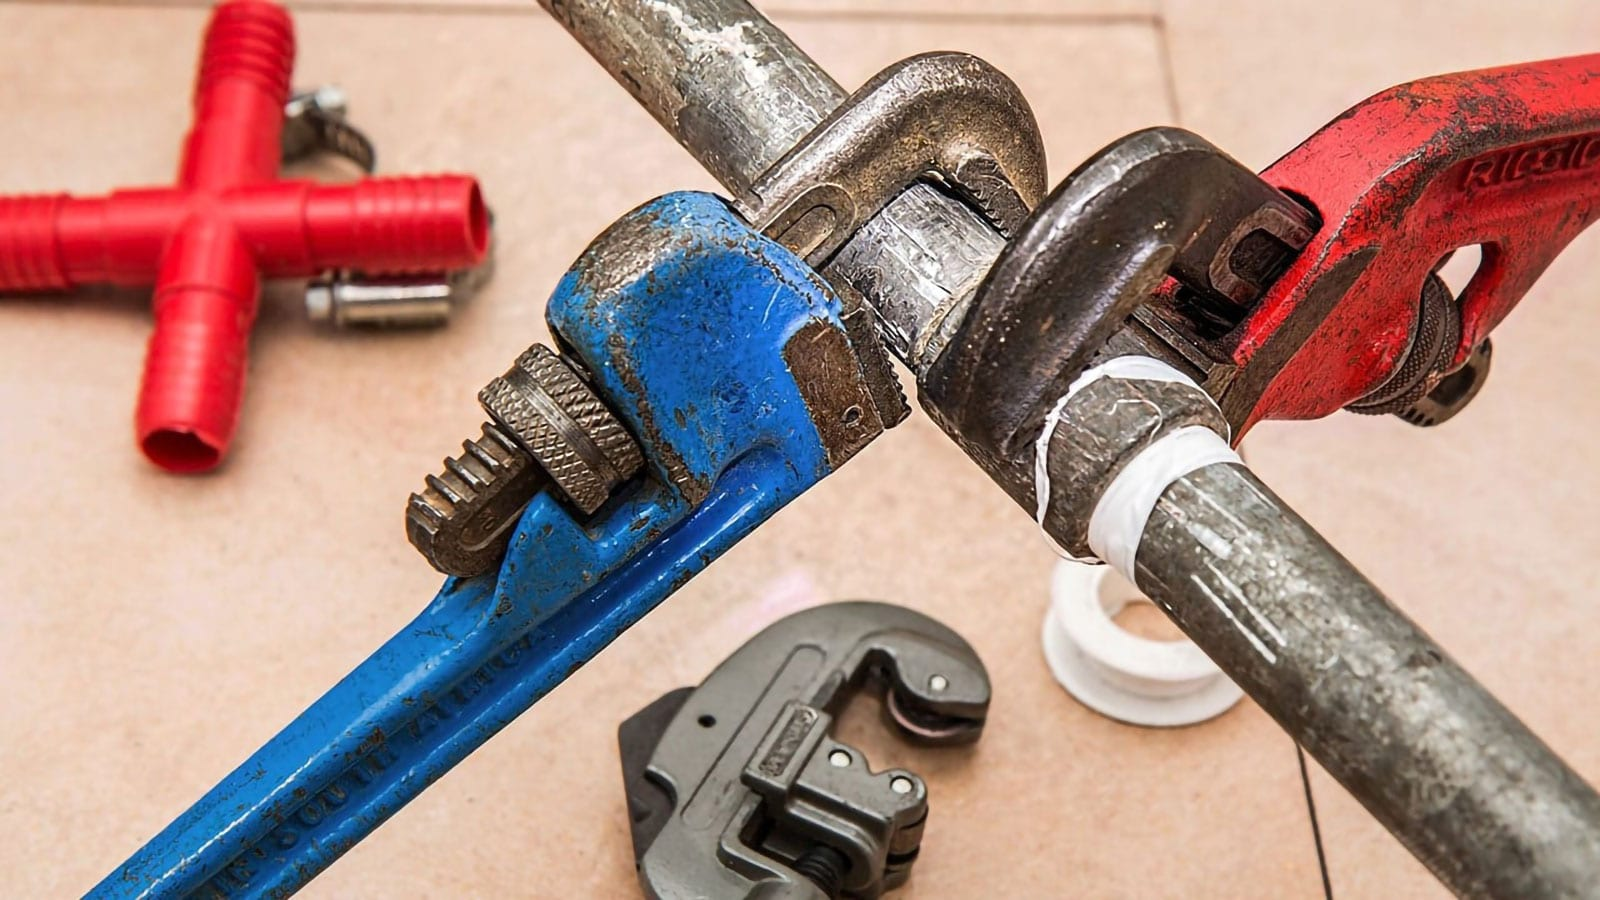 5 Plumbing Marketing Ideas to Grow Your Business